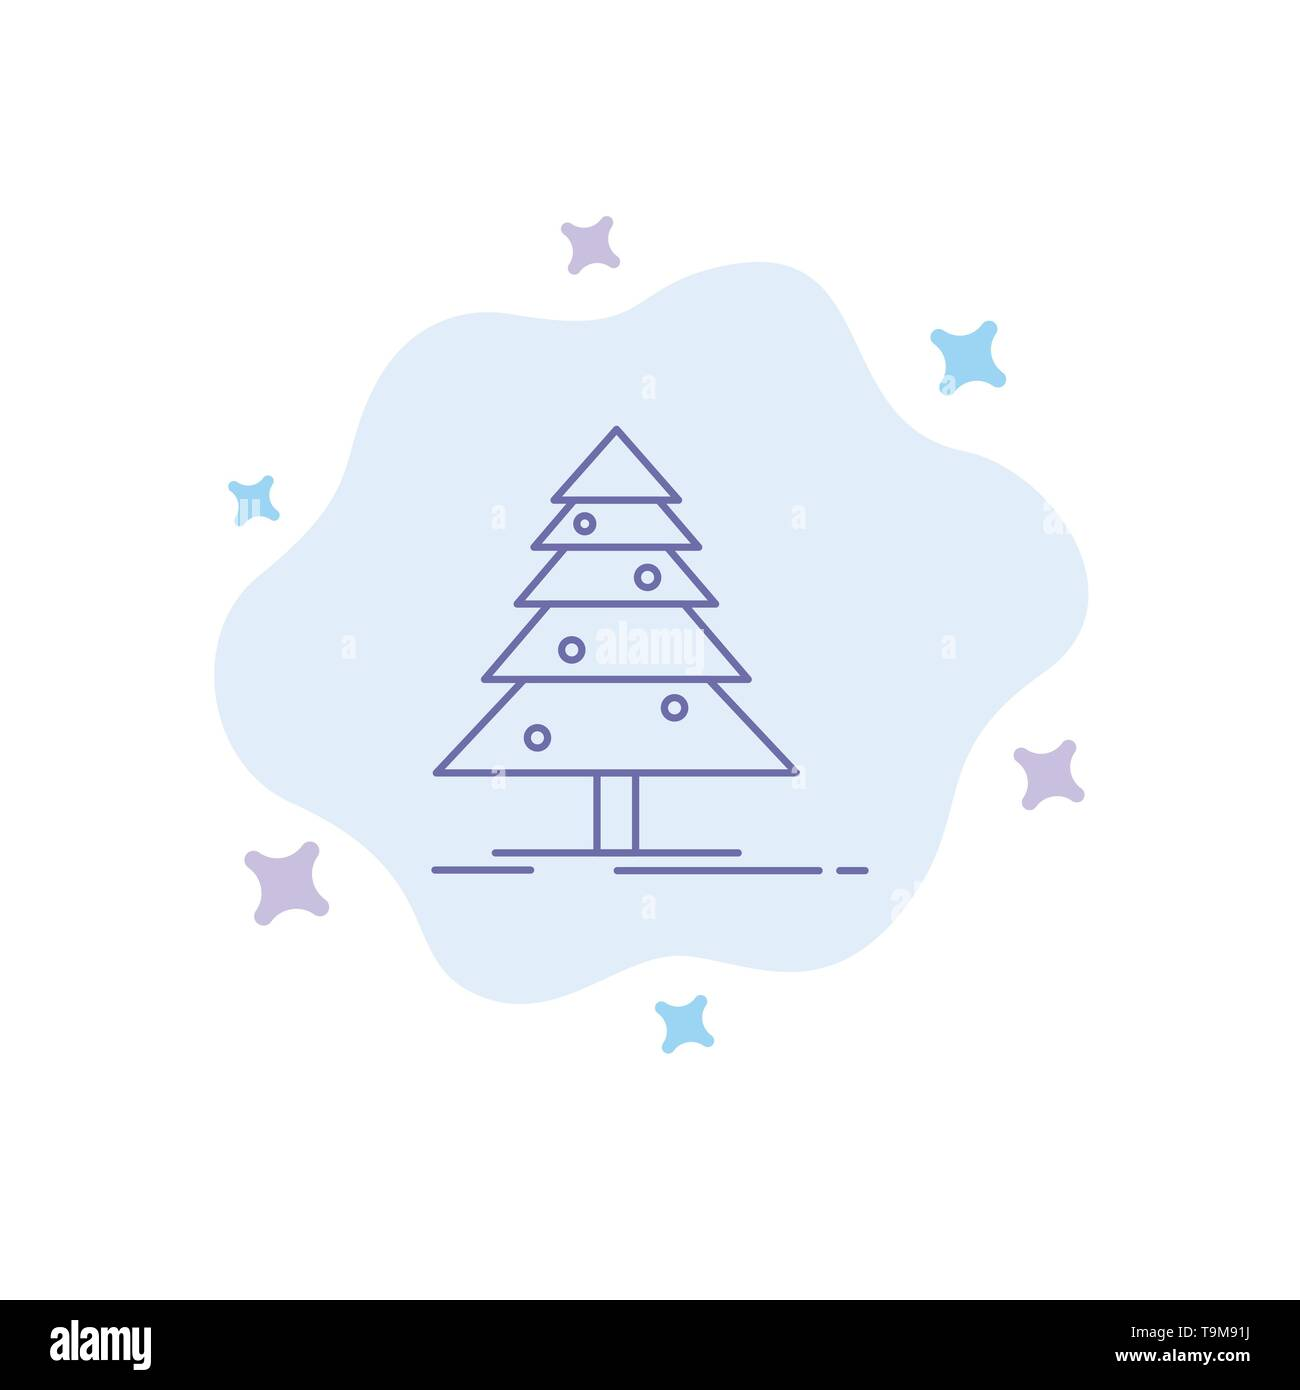 Tree, Forest, Christmas, XMas Blue Icon on Abstract Cloud Background - Stock Image